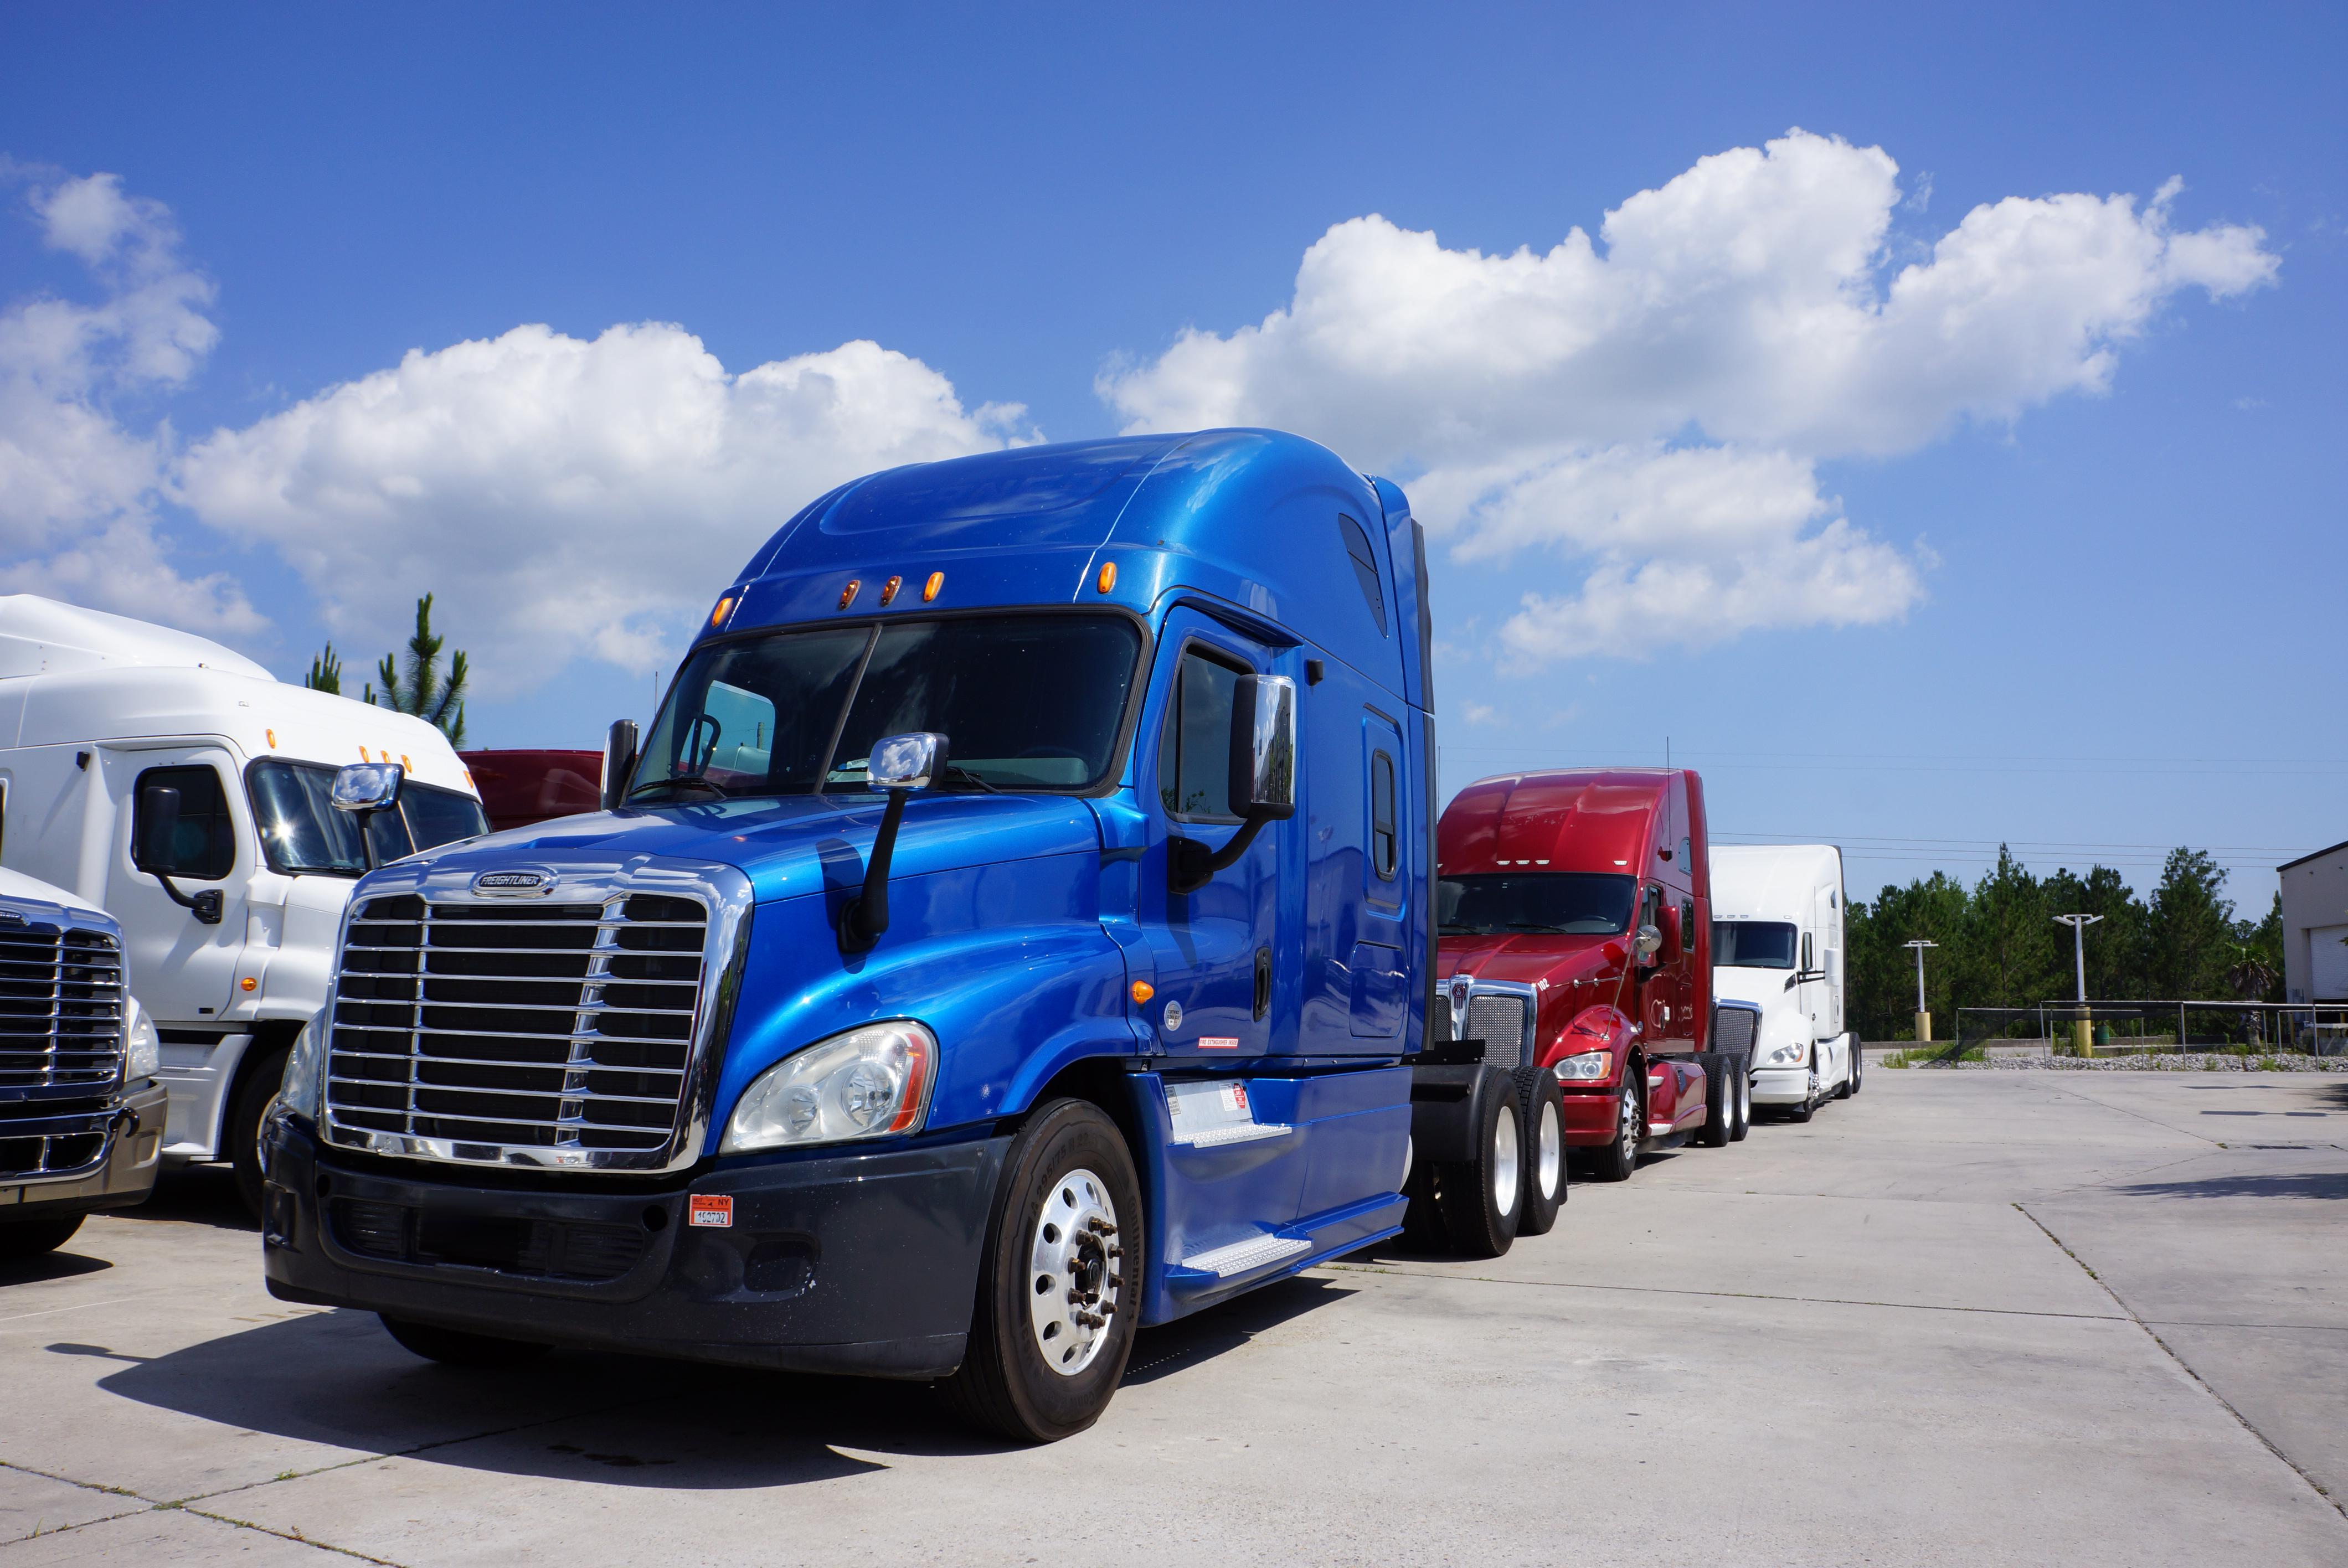 Used 2013 Freightliner Cascadia for sale-59110336